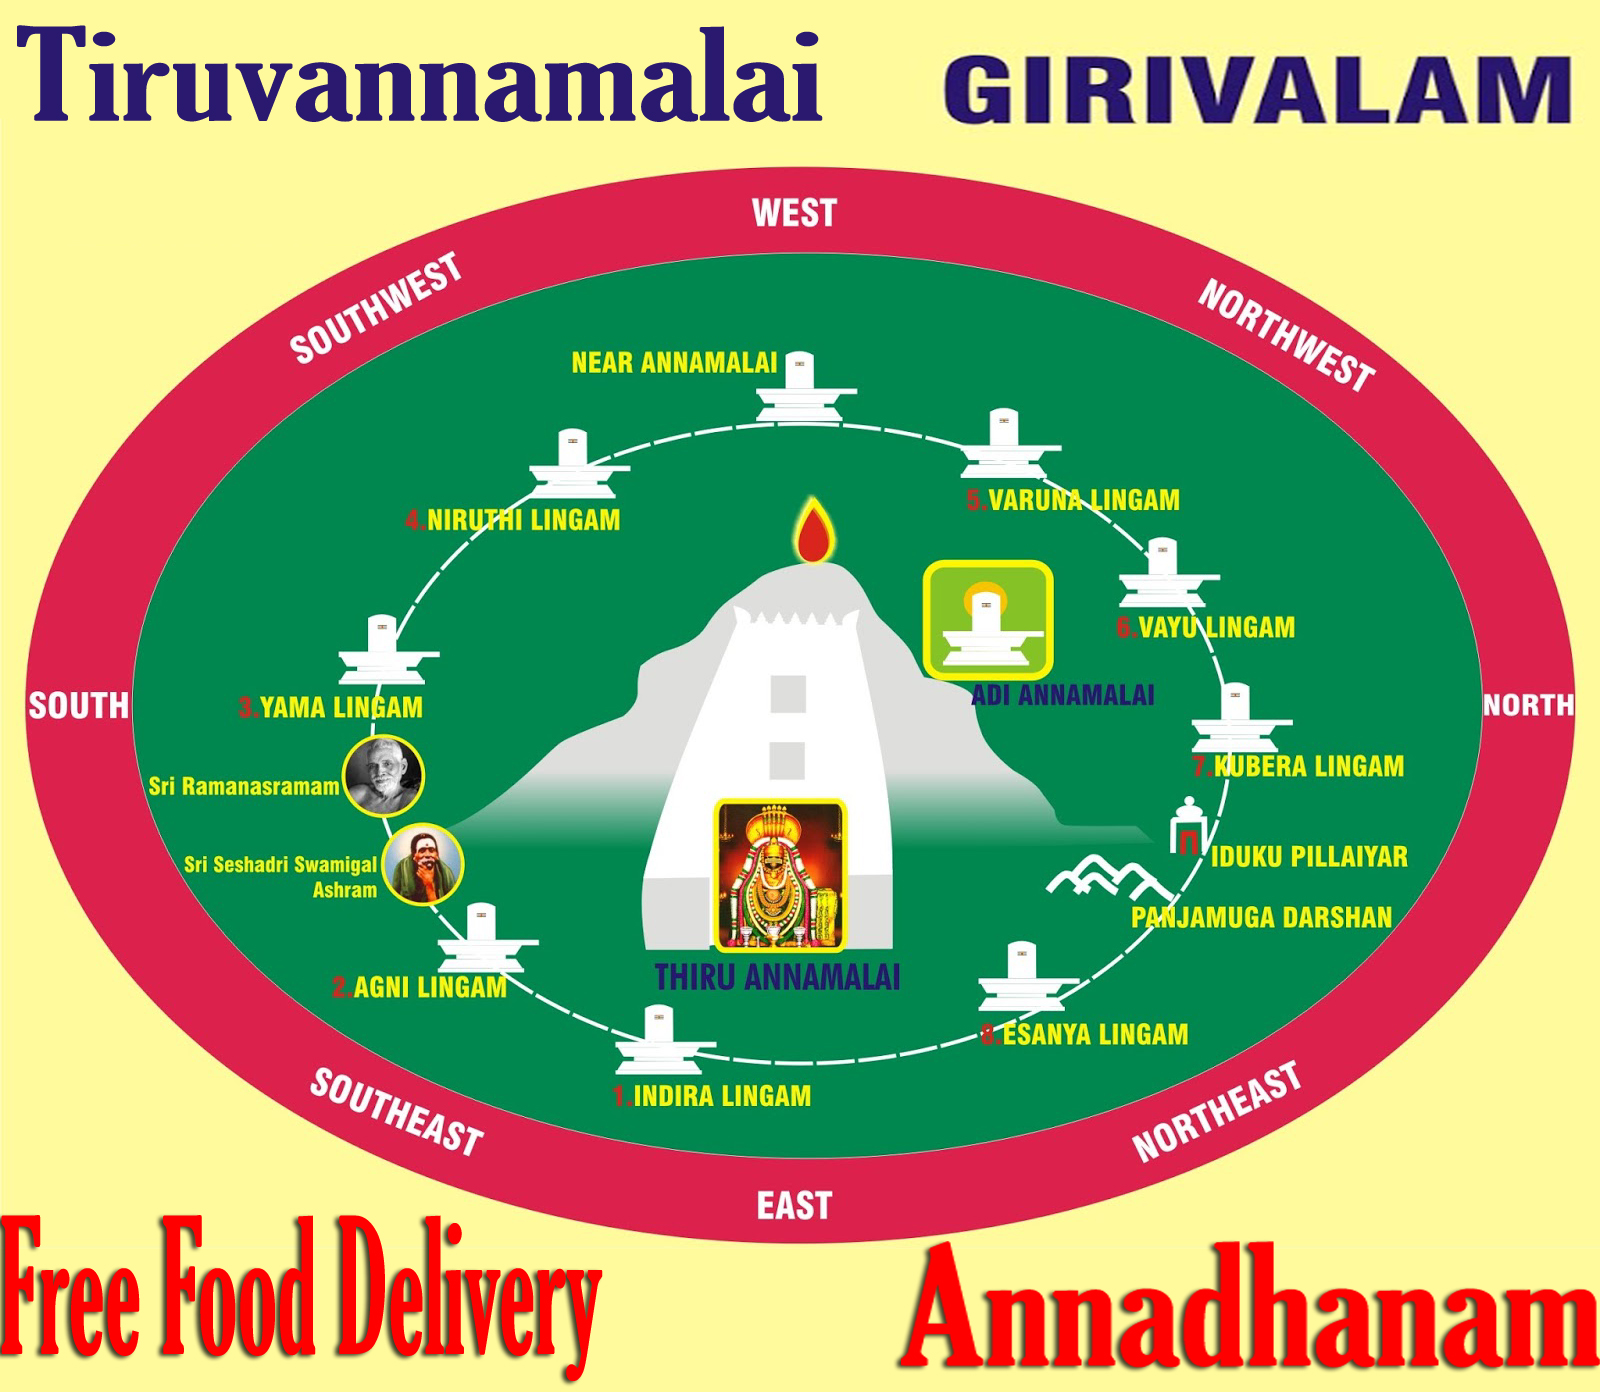 Daily Annadanam in Tiruvannamalai – Feeding saints, devotees and needy !!